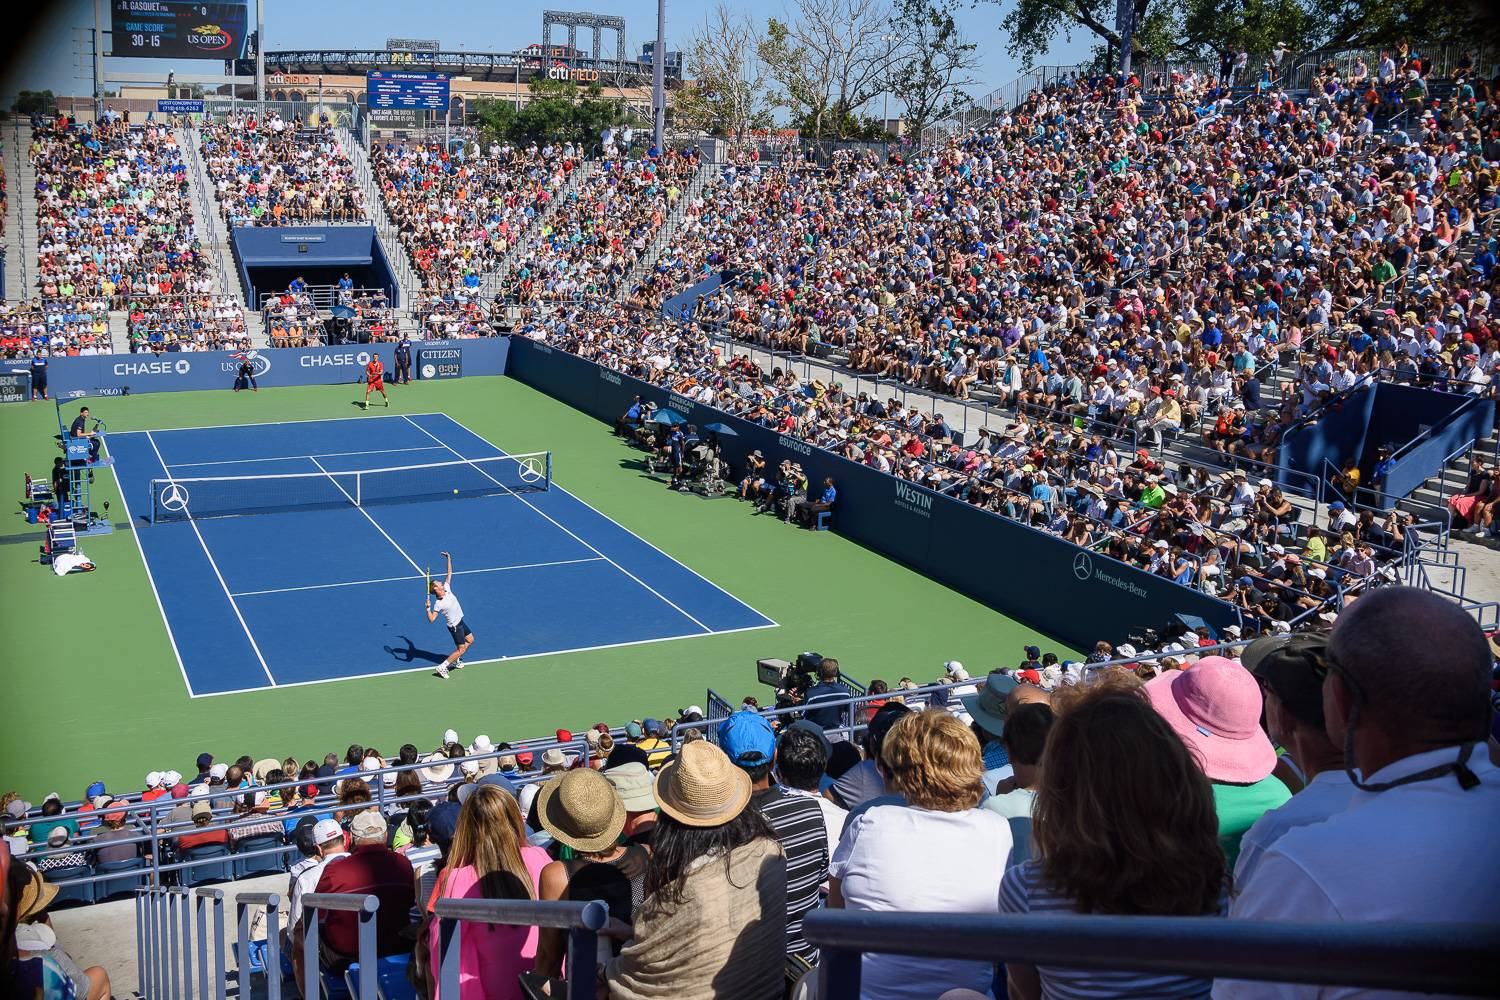 Smash-Hit Furnished Apartments for the US Open and More!